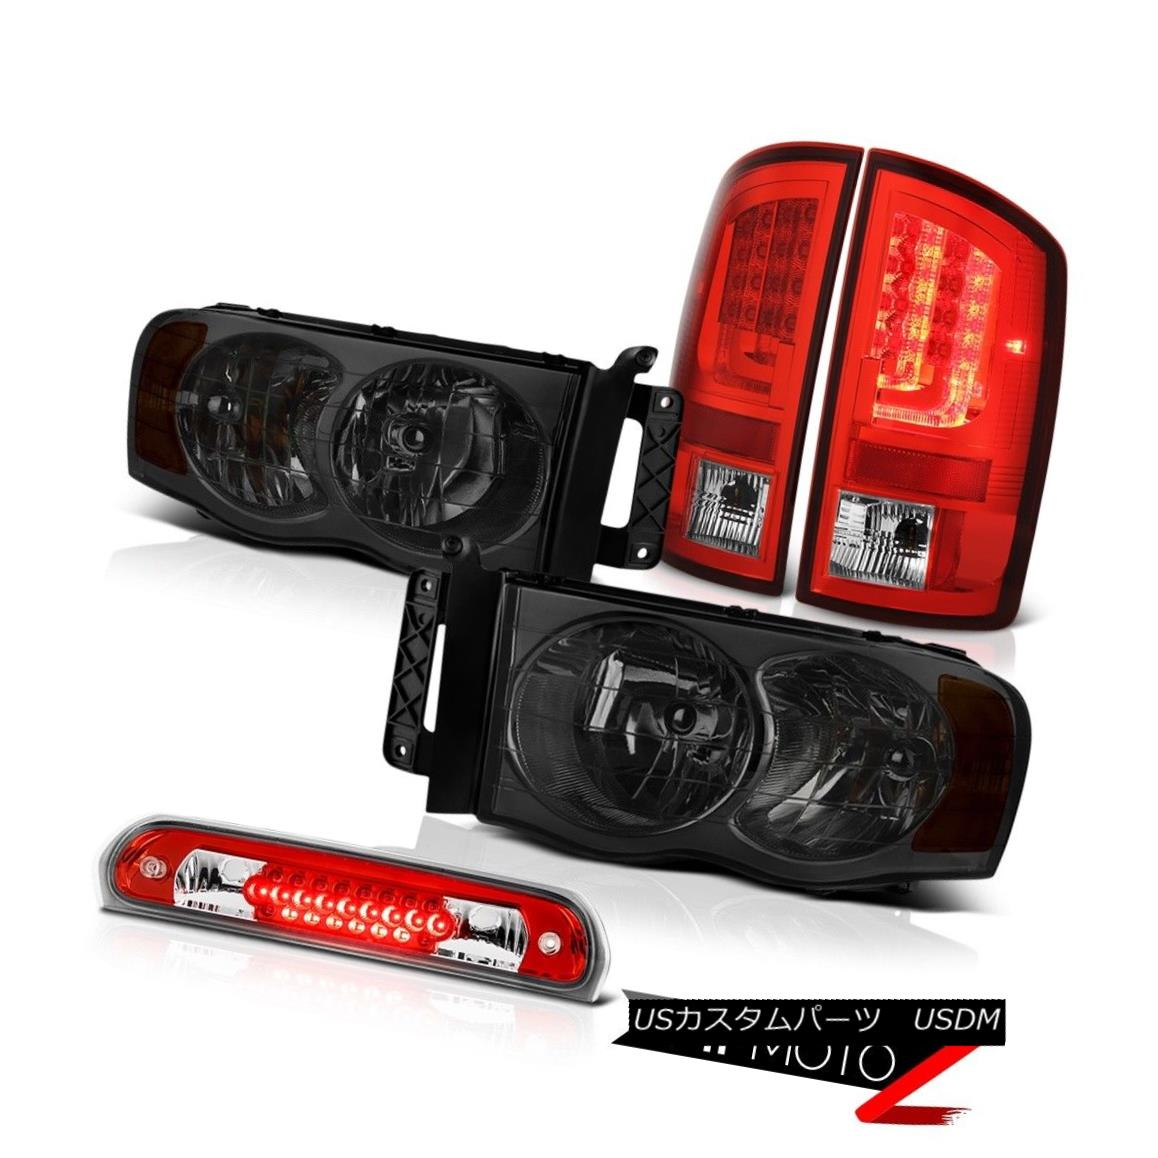 テールライト 2003-2005 Dodge Ram 3500 5.9L Tail Lights Headlights High STop Light Light Bar 2003-2005 Dodge Ram 3500 5.9LテールライトヘッドライトHigh STopライトライトバー